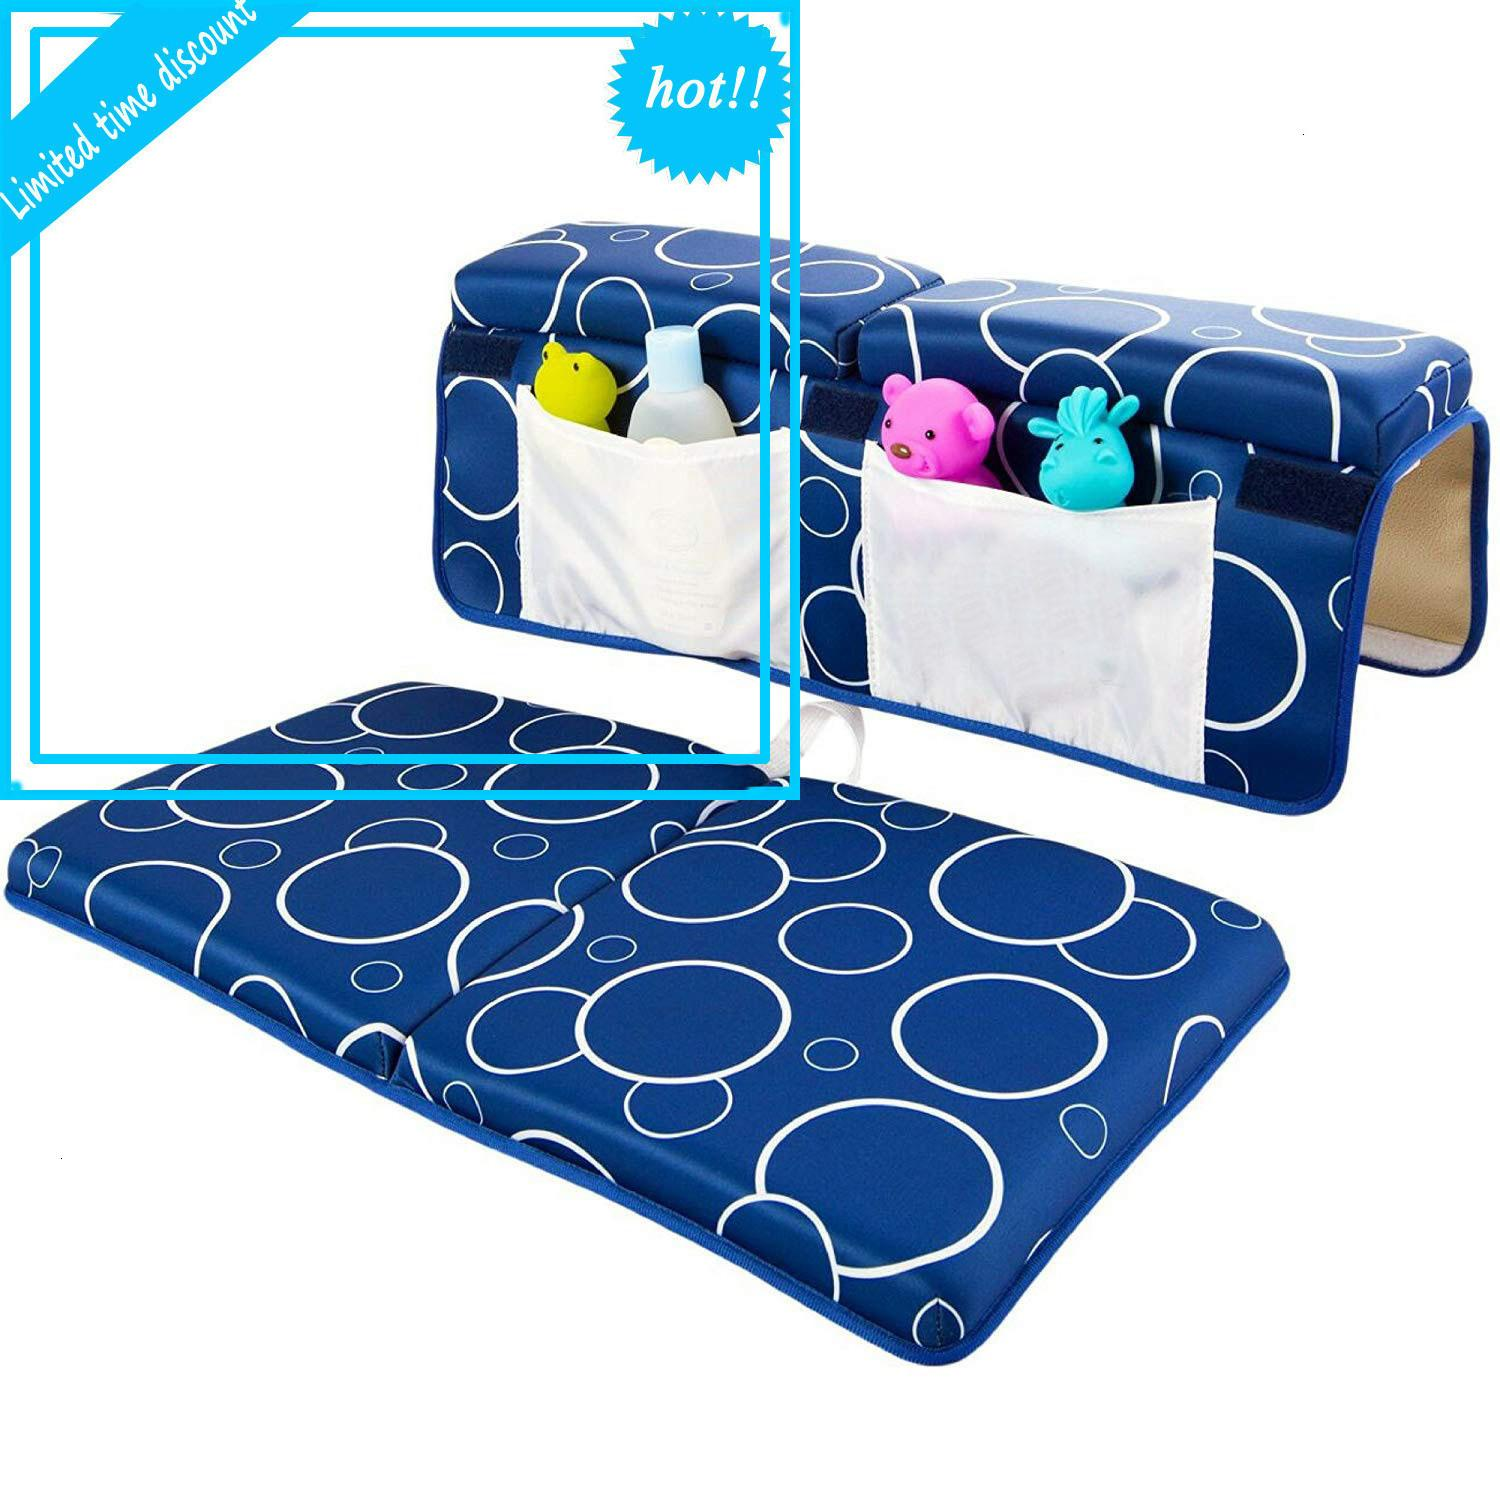 Washable baby bath Kneeler with elbow rest pad set